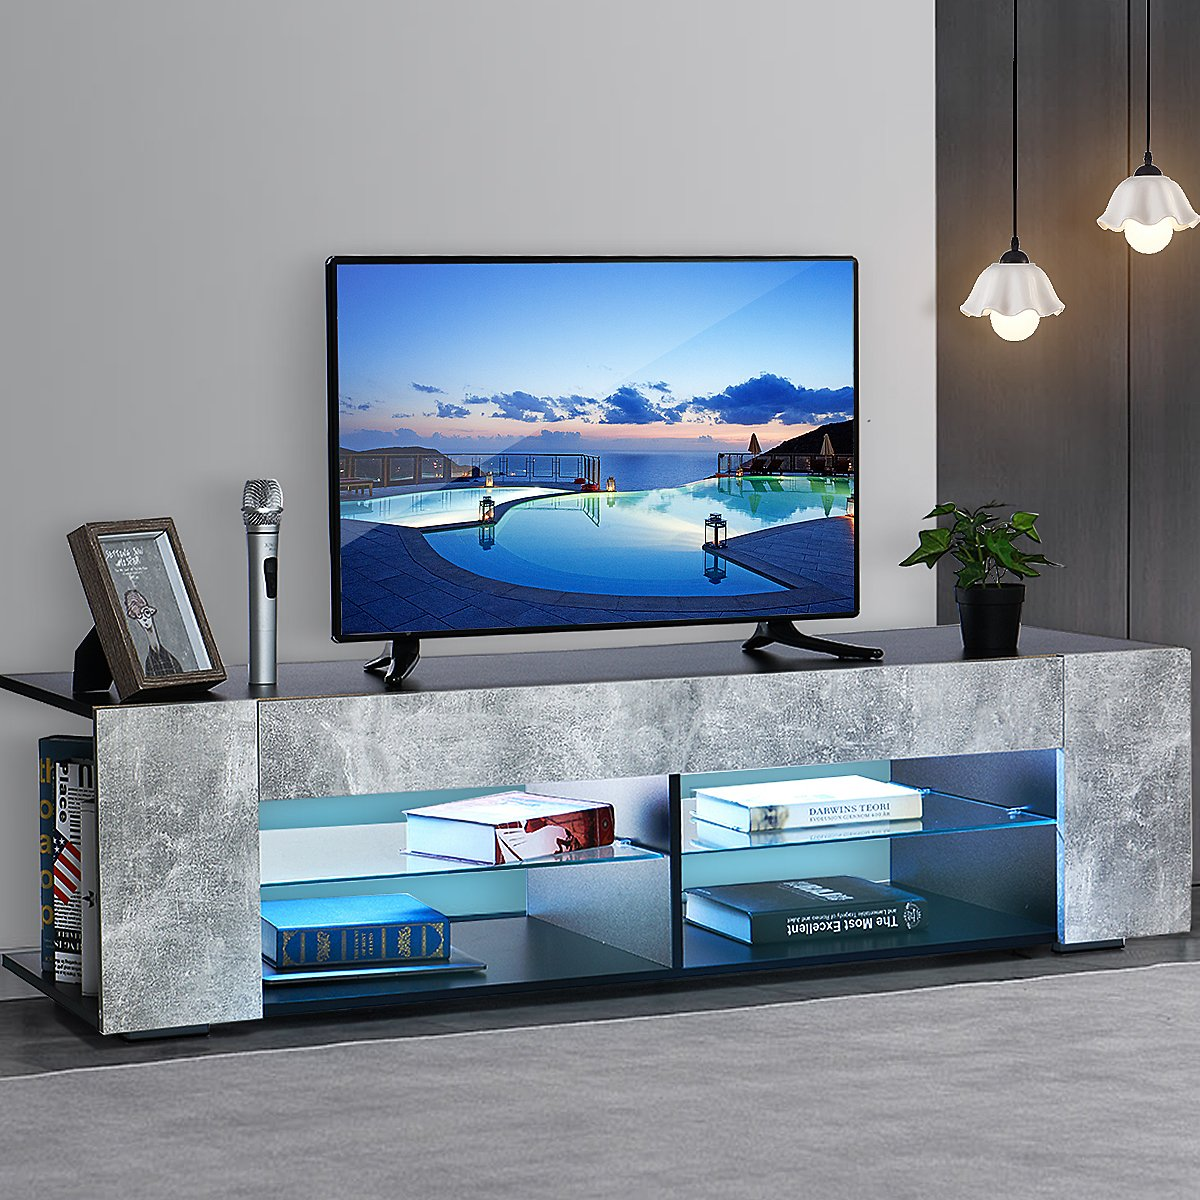 57 TV Stand with Multi-colour RGB LED Light Gray & Black TV Cabinet with Open Glass Shelves for TVs Up to 65